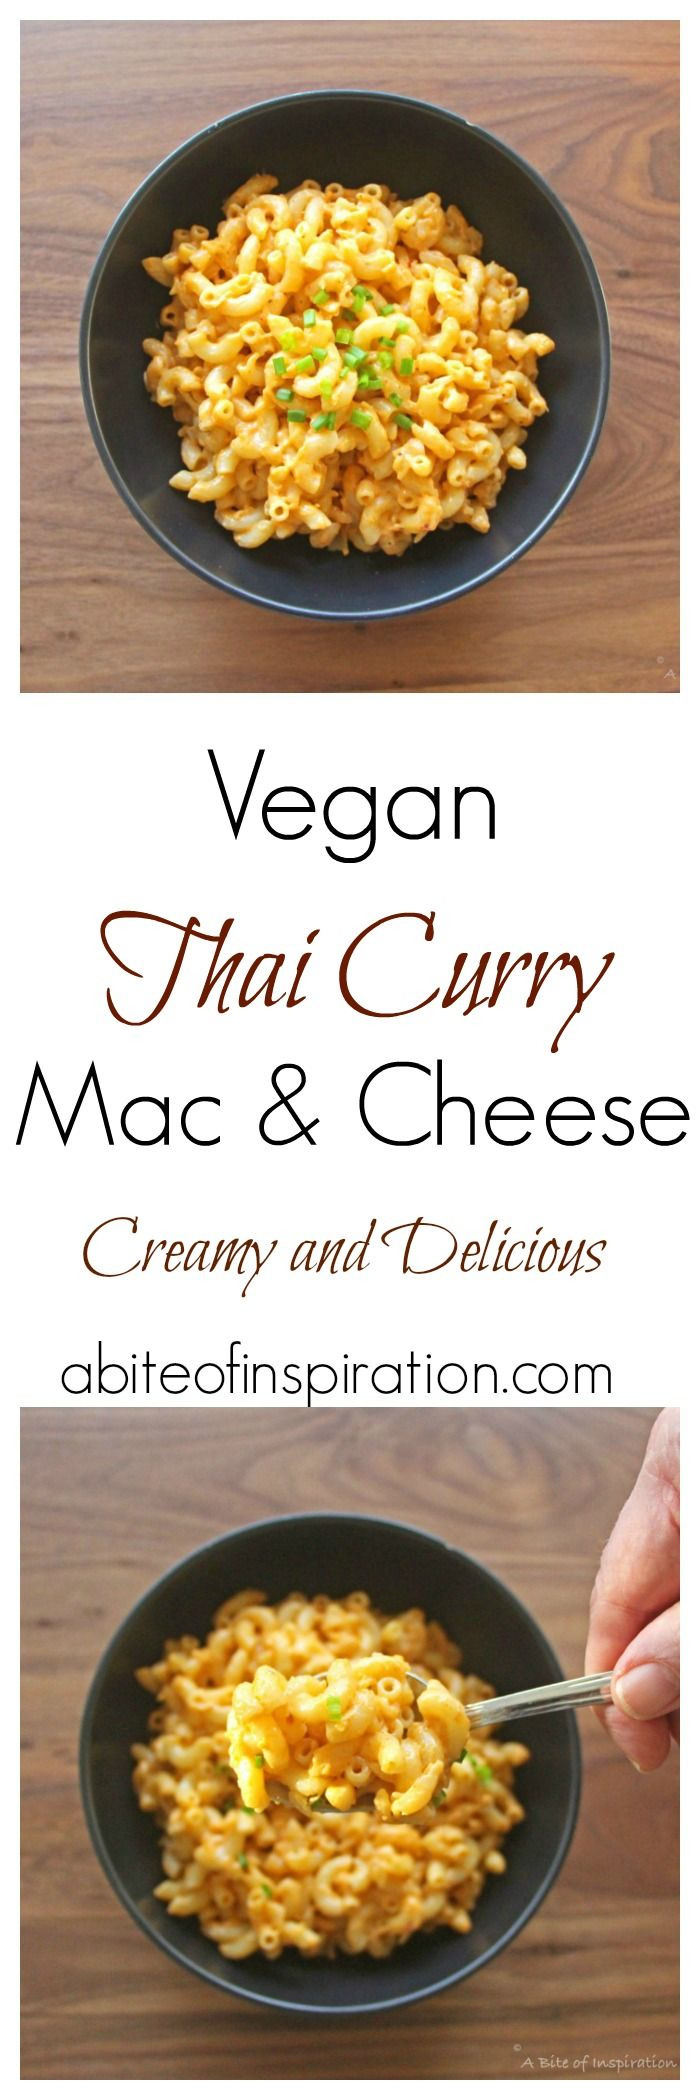 Try my Vegan Thai Curry Mac & Cheese recipe! Creamy, bold, and delicious! Easy to make and 100 percent plant-based!